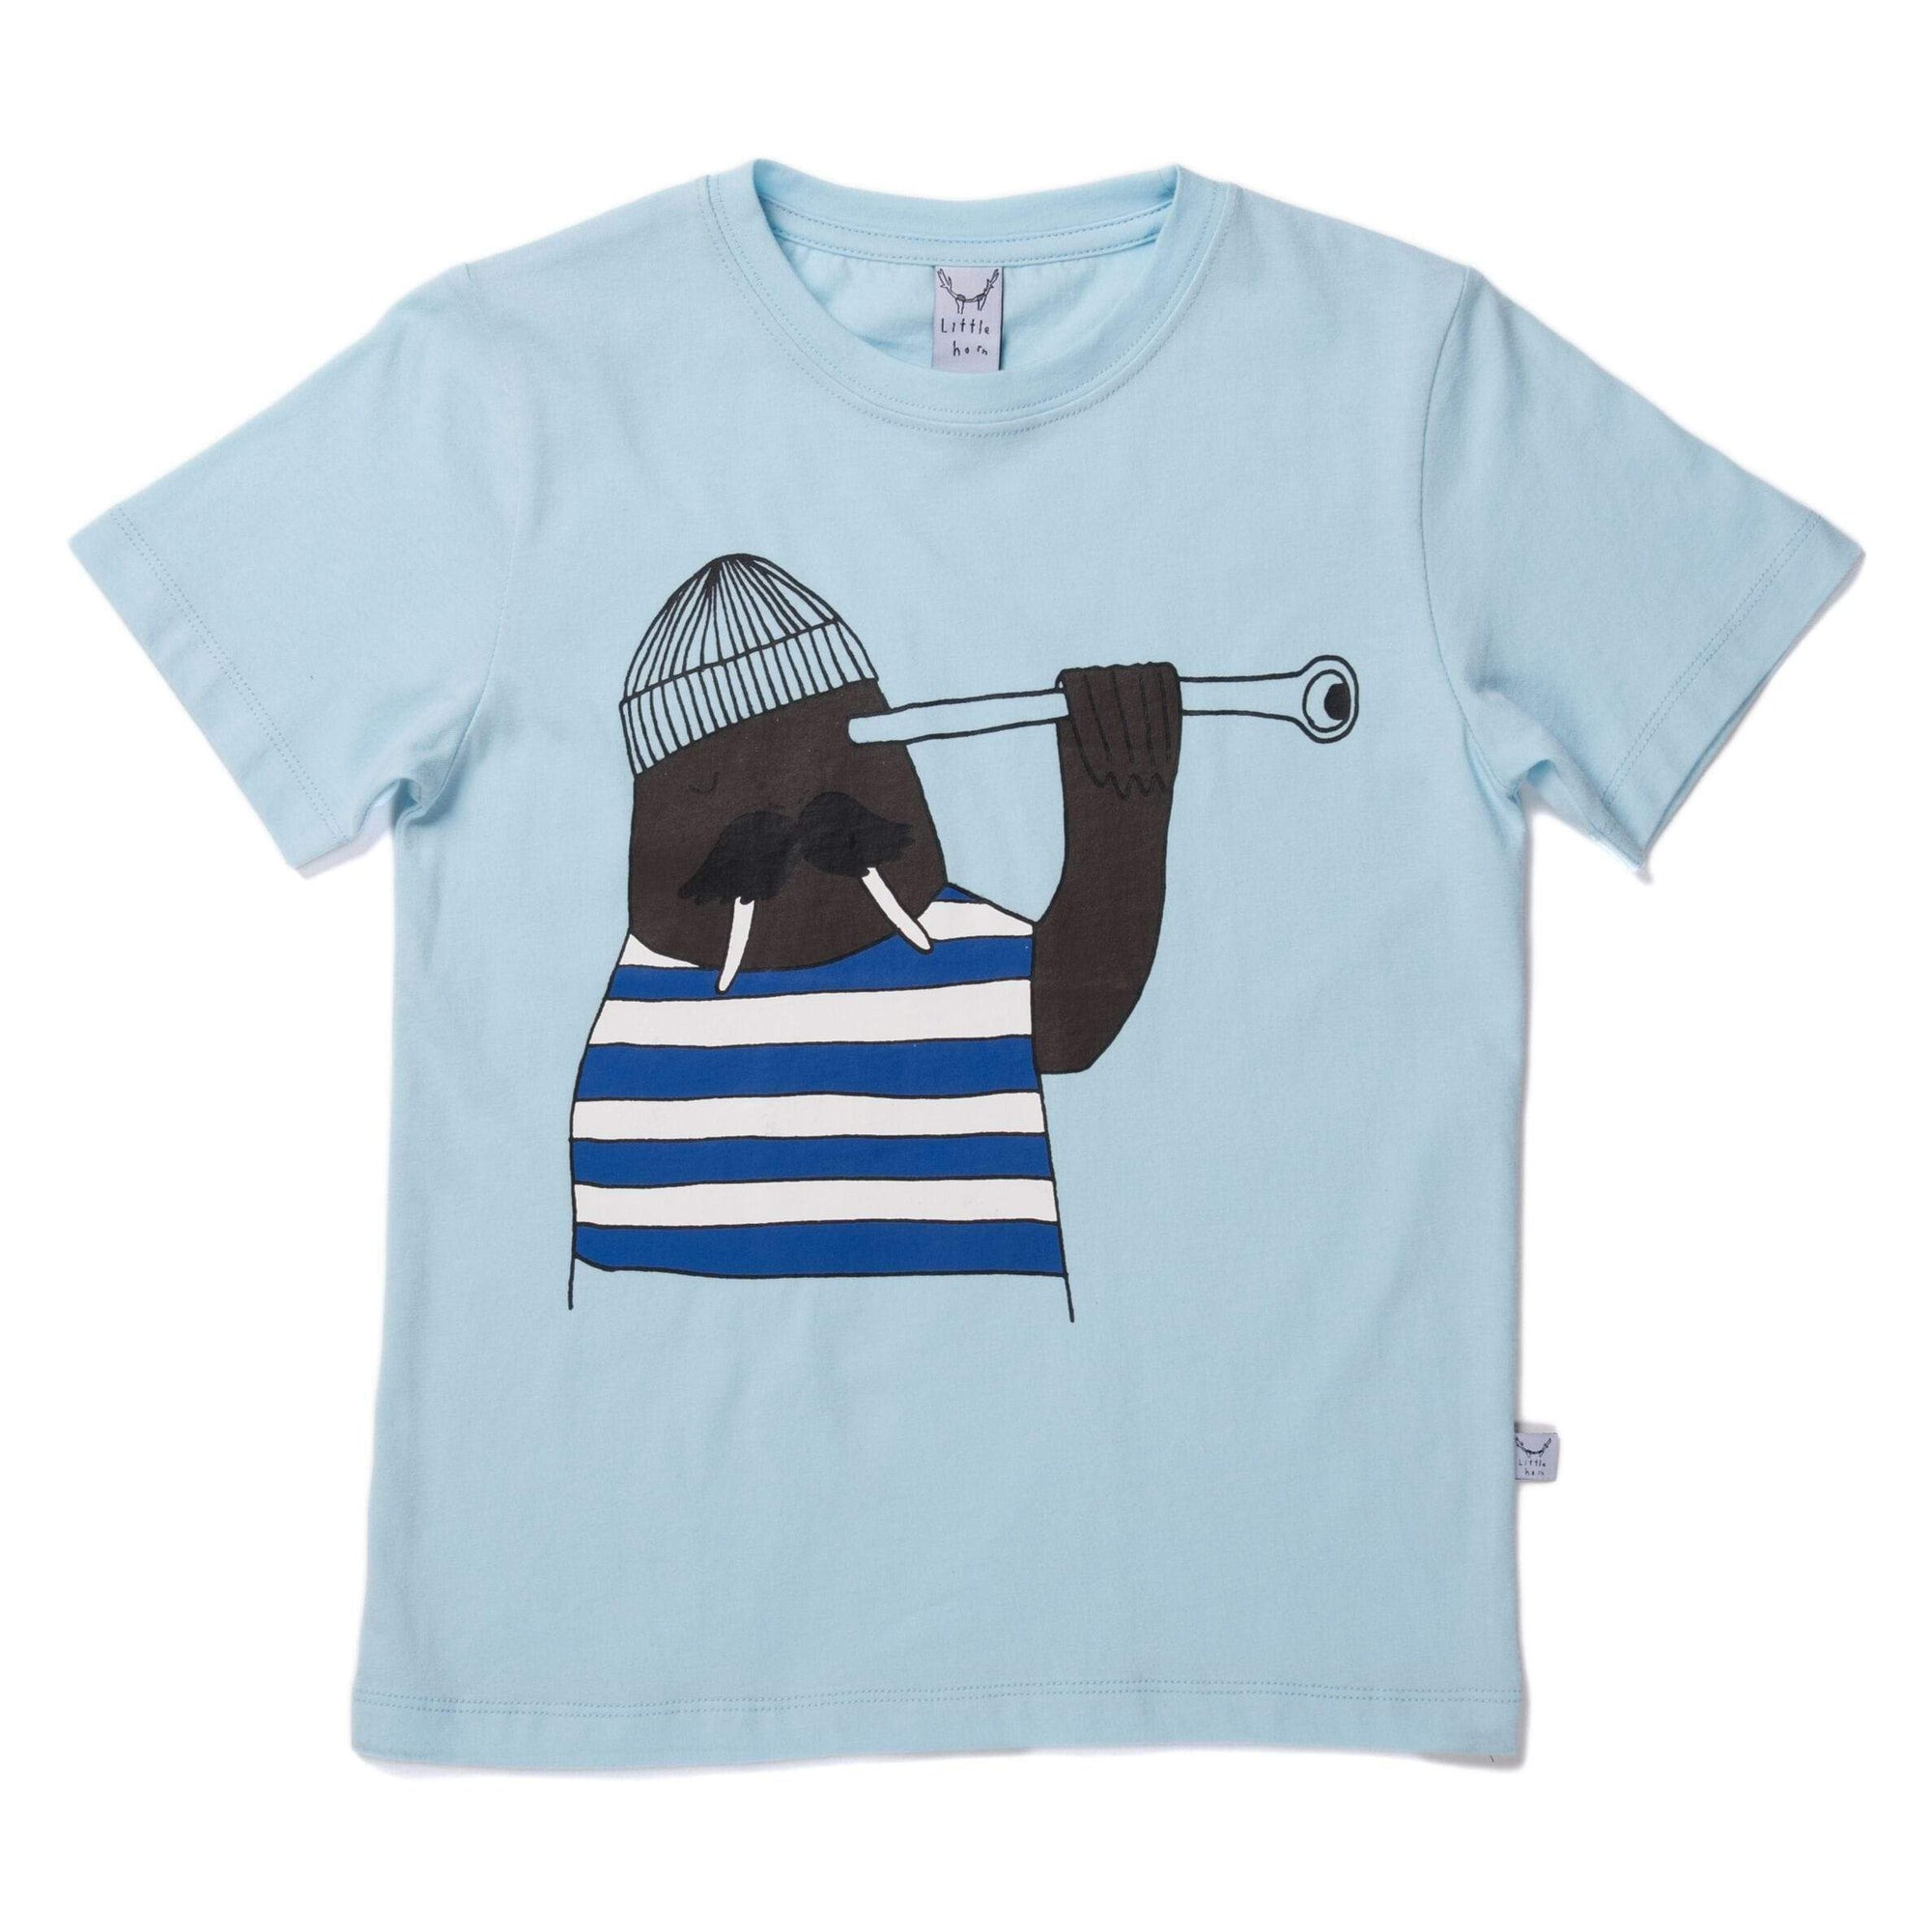 Lookout Walrus Tee - Light Blue